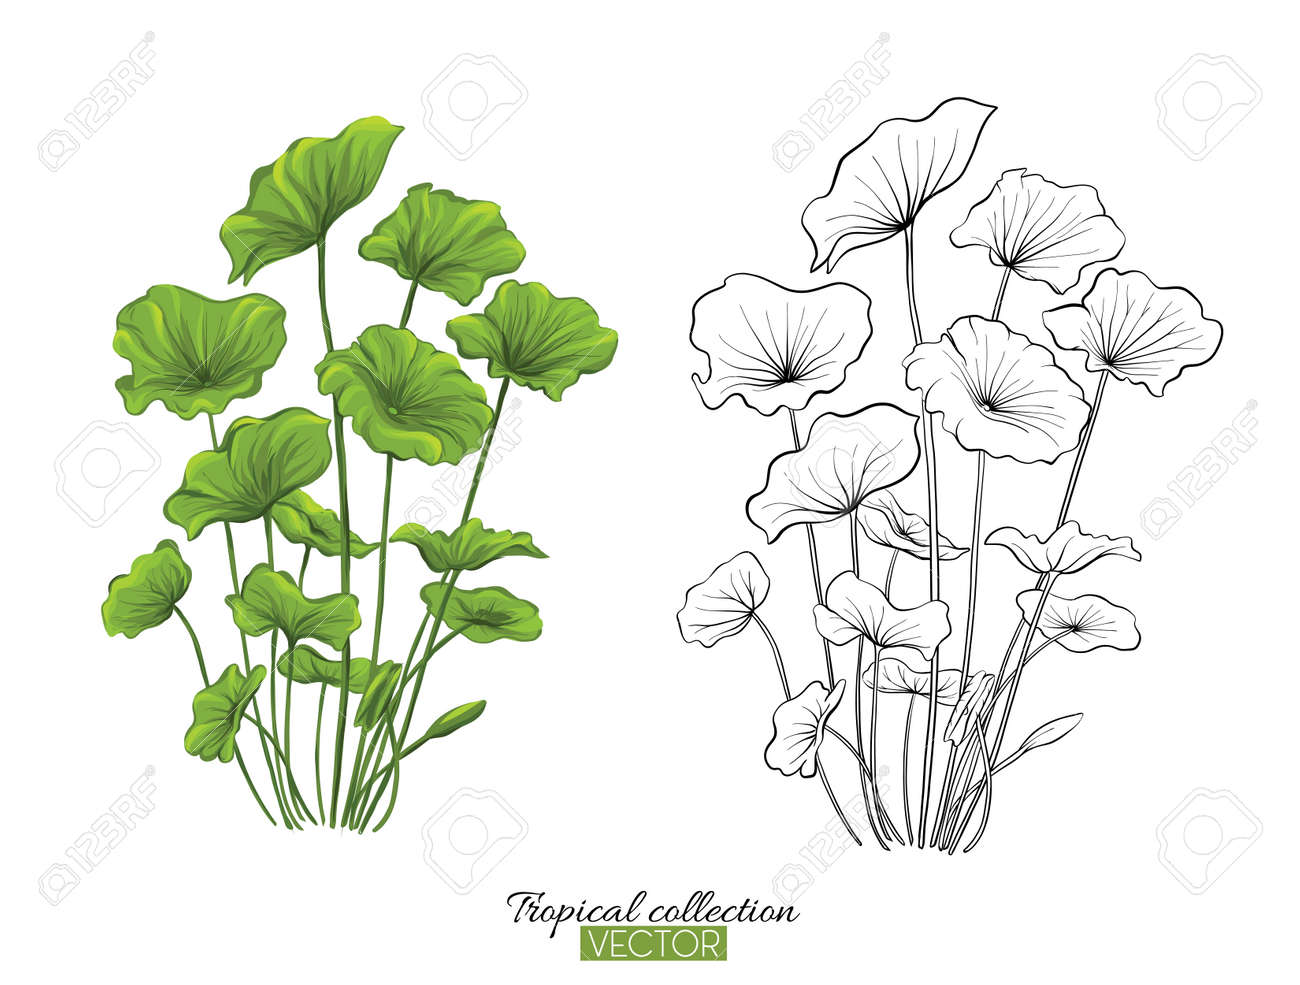 Tropical plant collection vector illustration isolated on white - 106918413